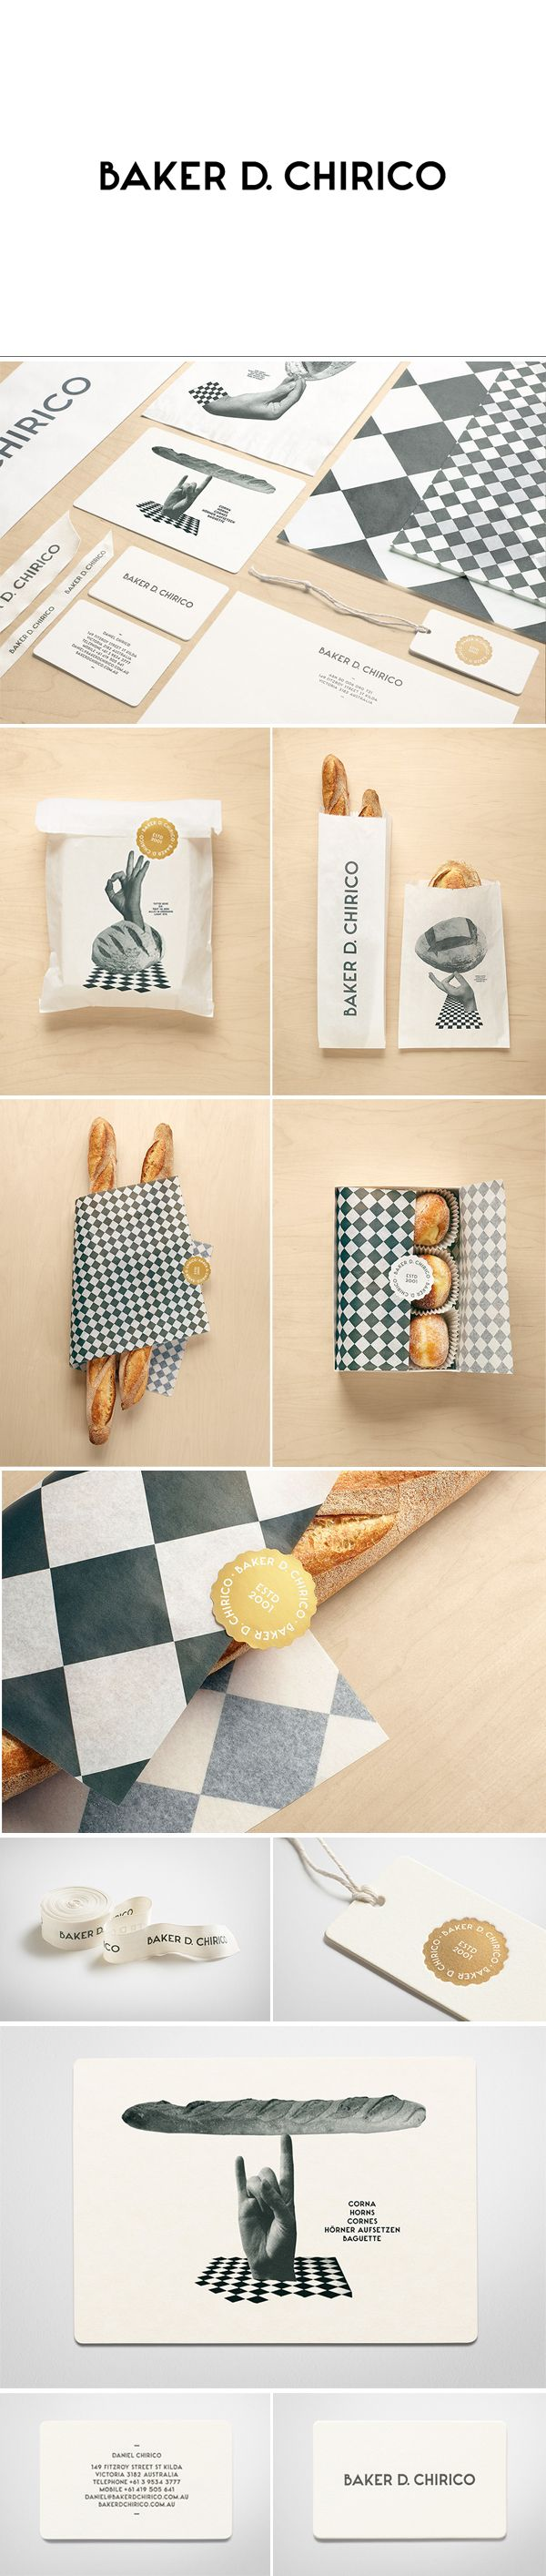 Baker D. Chirico #packaging #branding #marketing PD